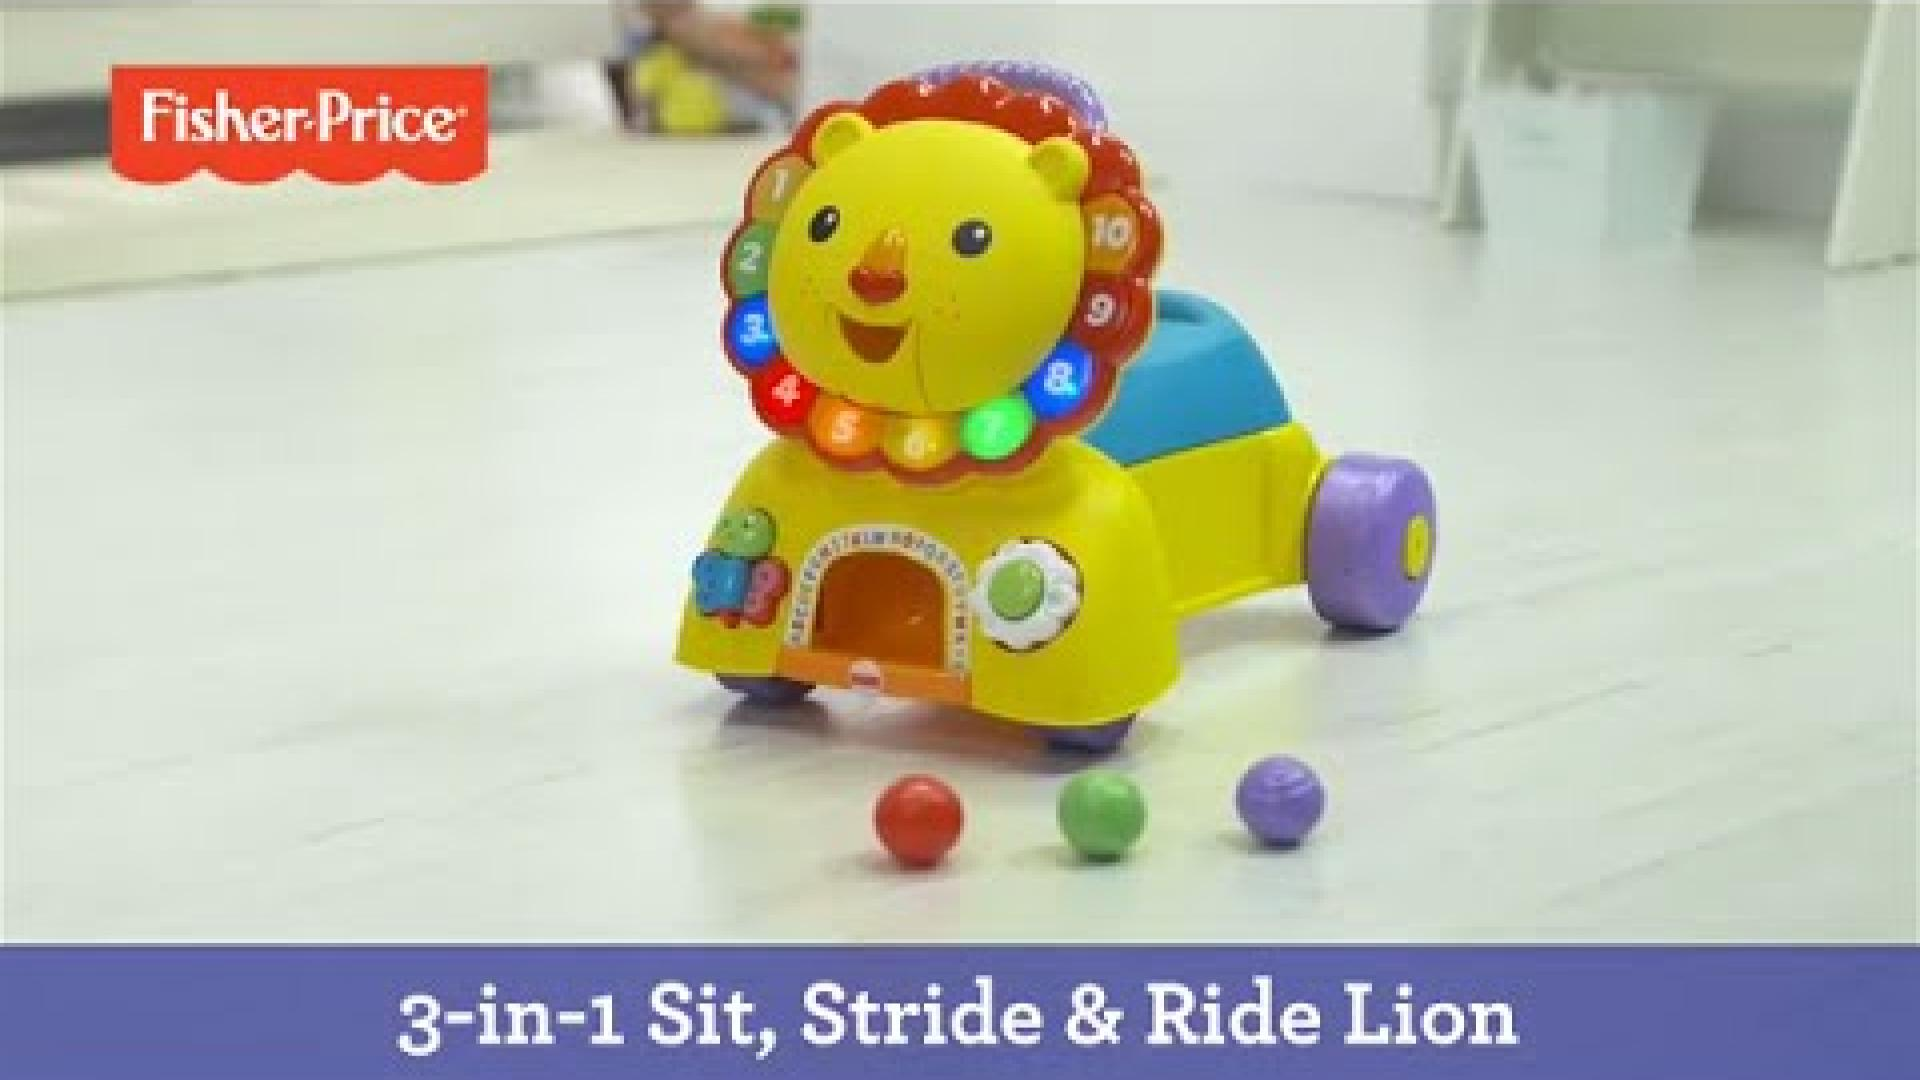 3-in-1 Sit, Stride & Ride Lion | Fisher-Price